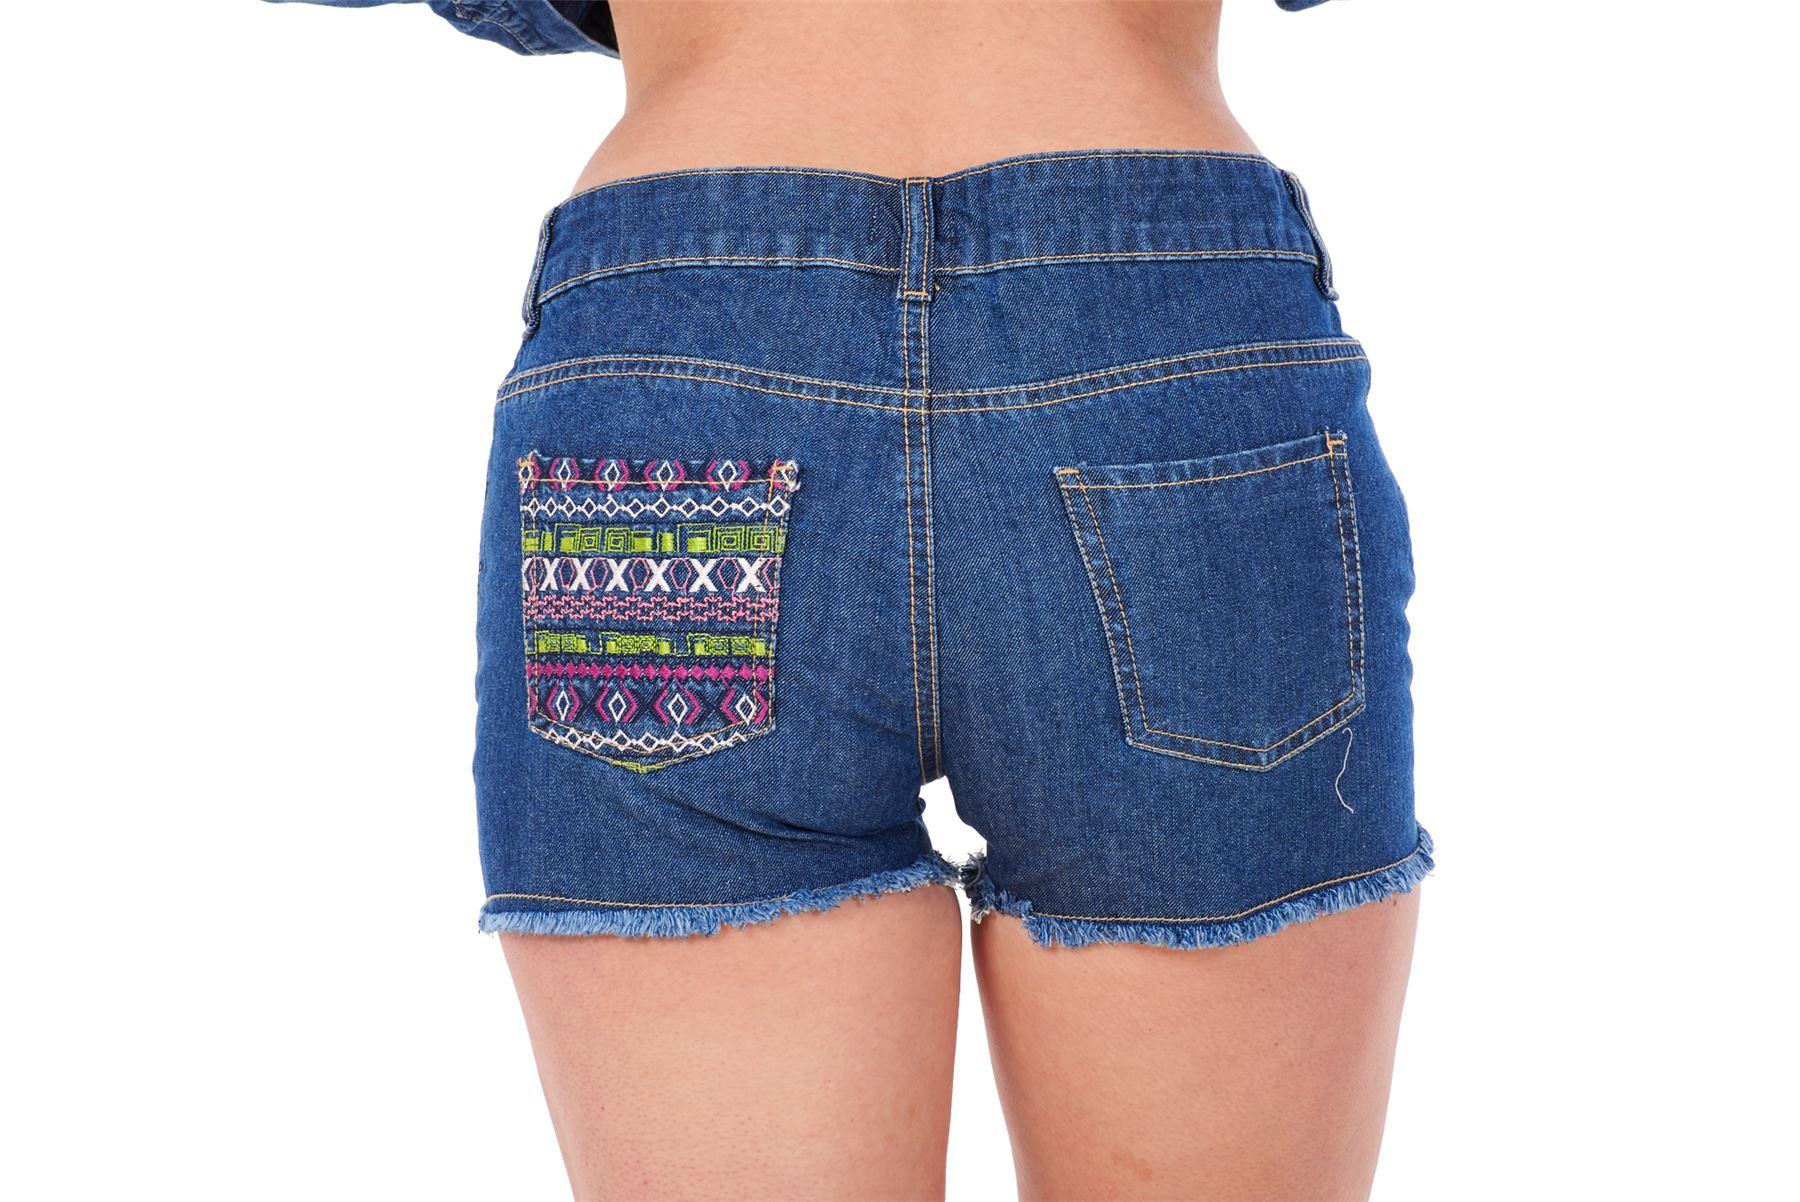 11e02dc666 Ladies Denim shorts Embroidered 100% Cotton Zip Fly Women Summer Frayed  Hotpants